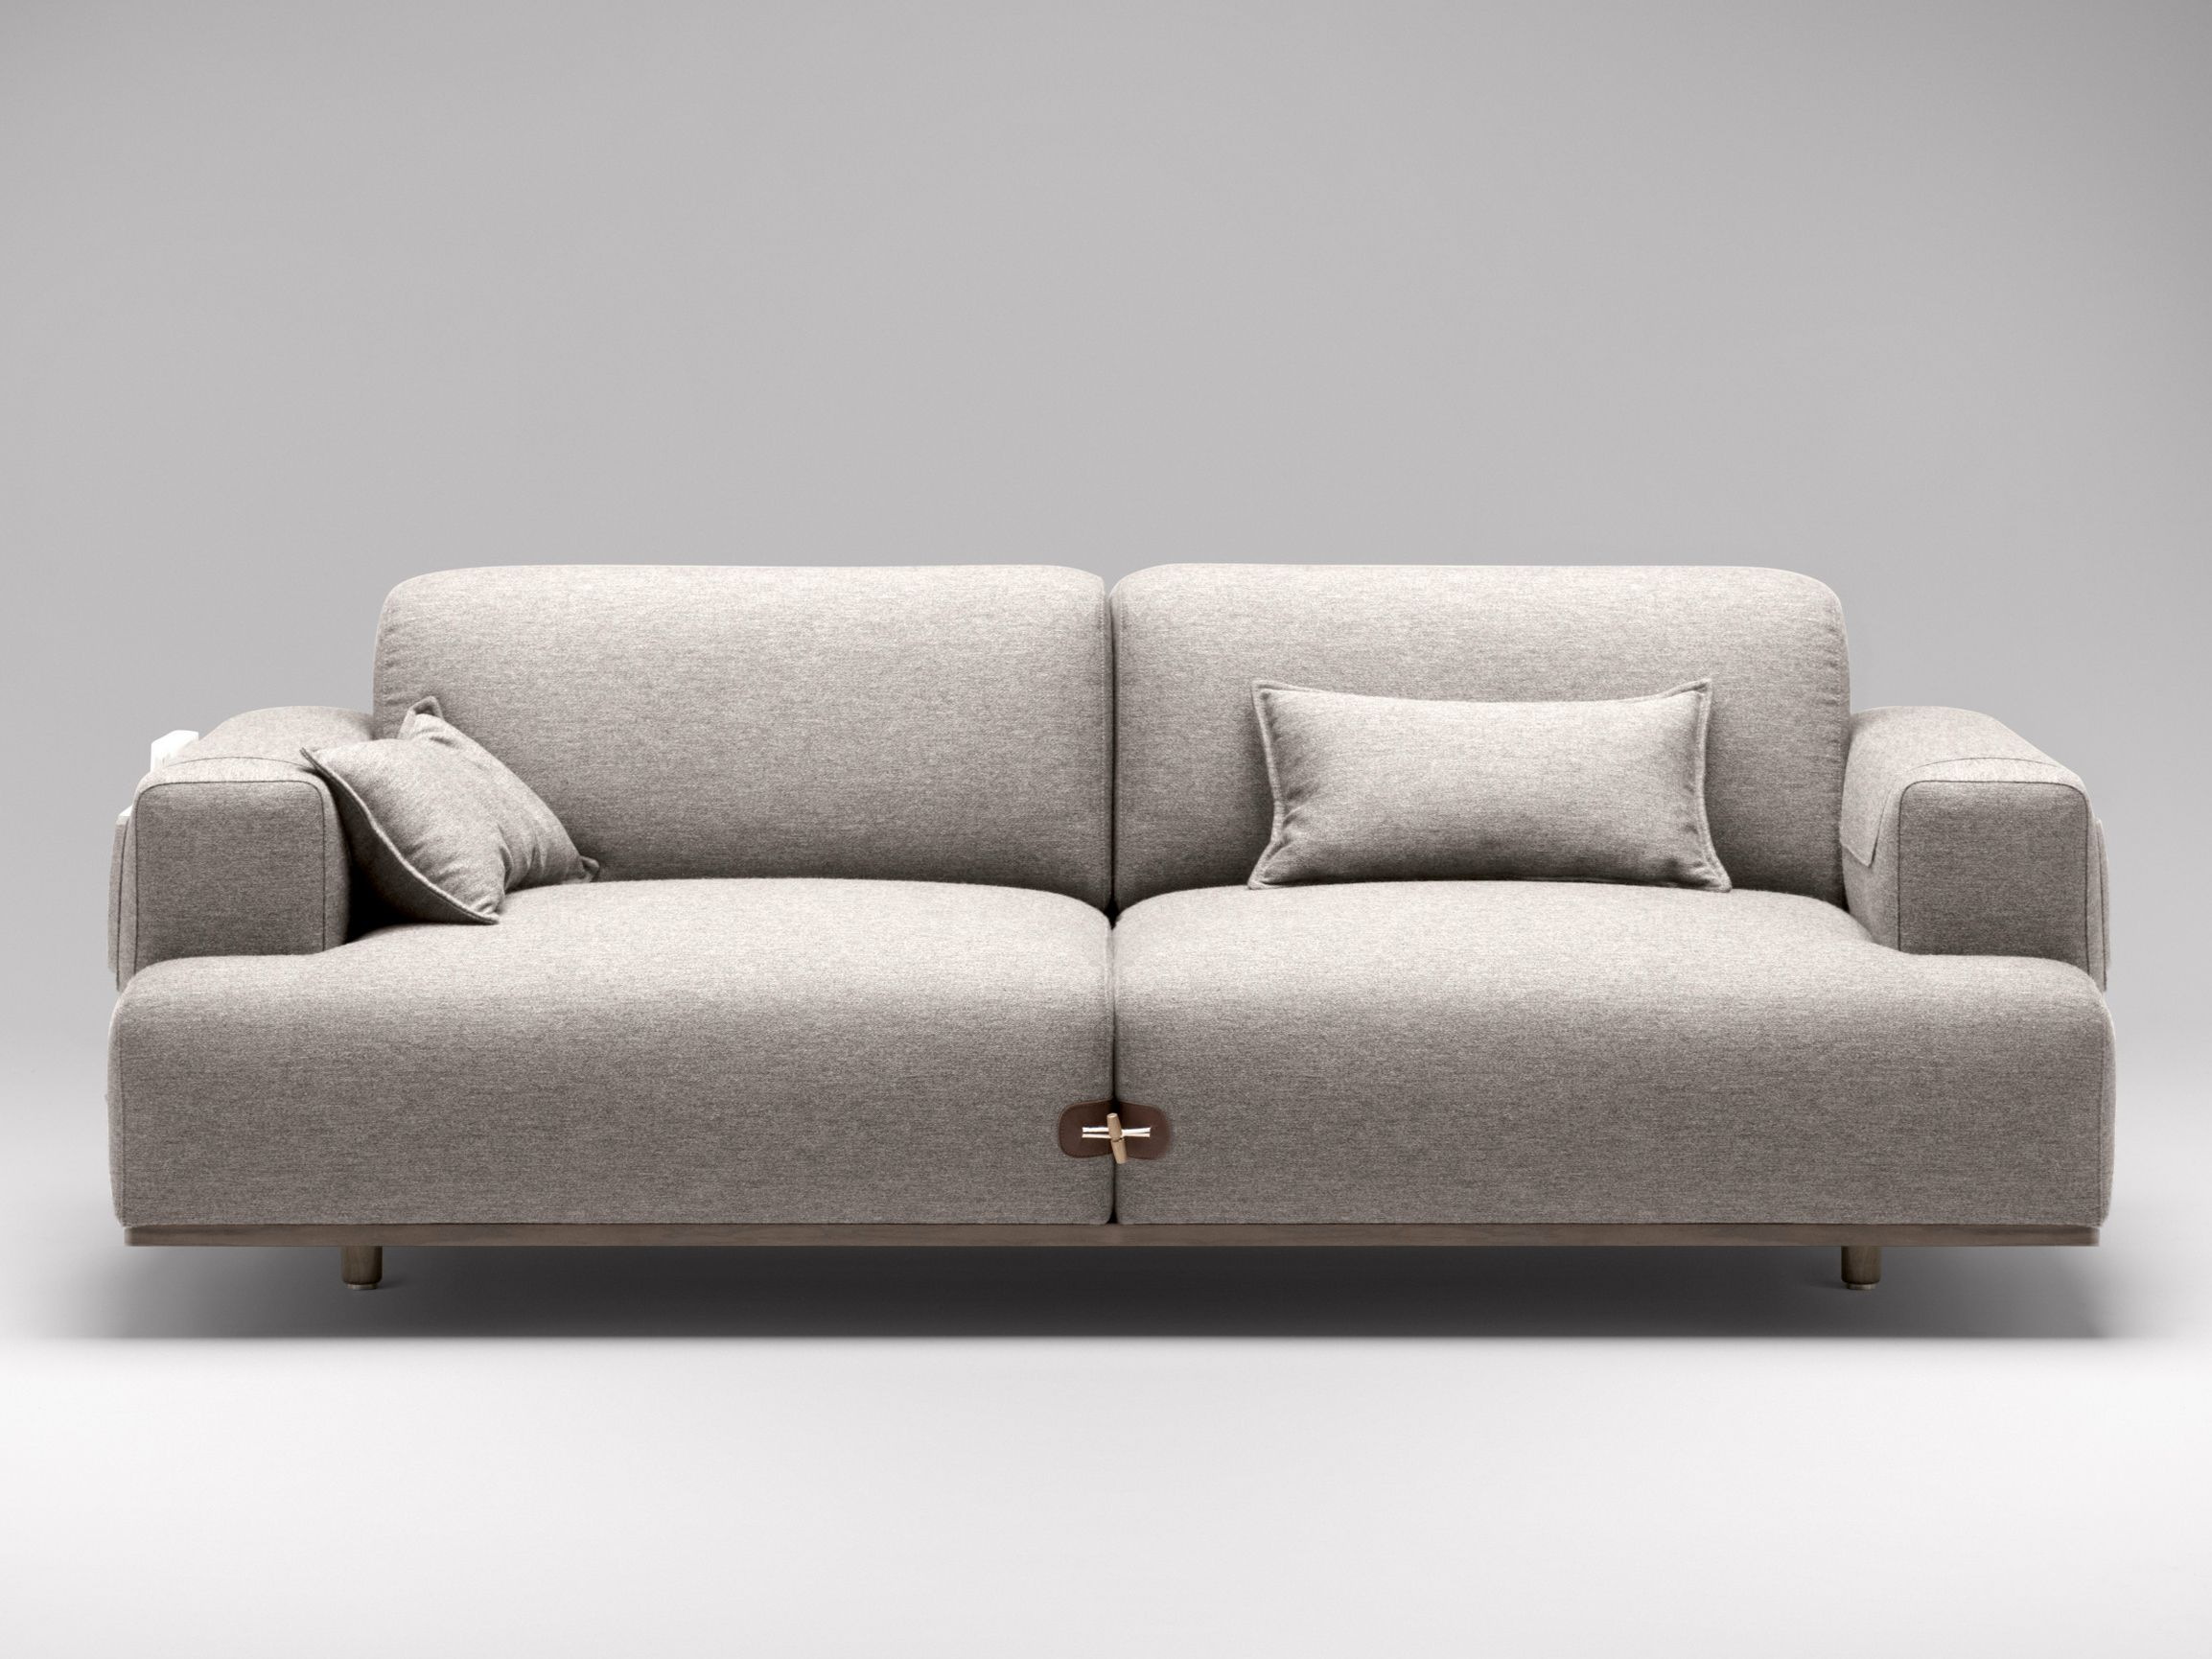 沙发 Duffle系列 By Bosc 设计师jean Louis Iratzoki Fabric Sofa Design Sofa Spacious Sofa